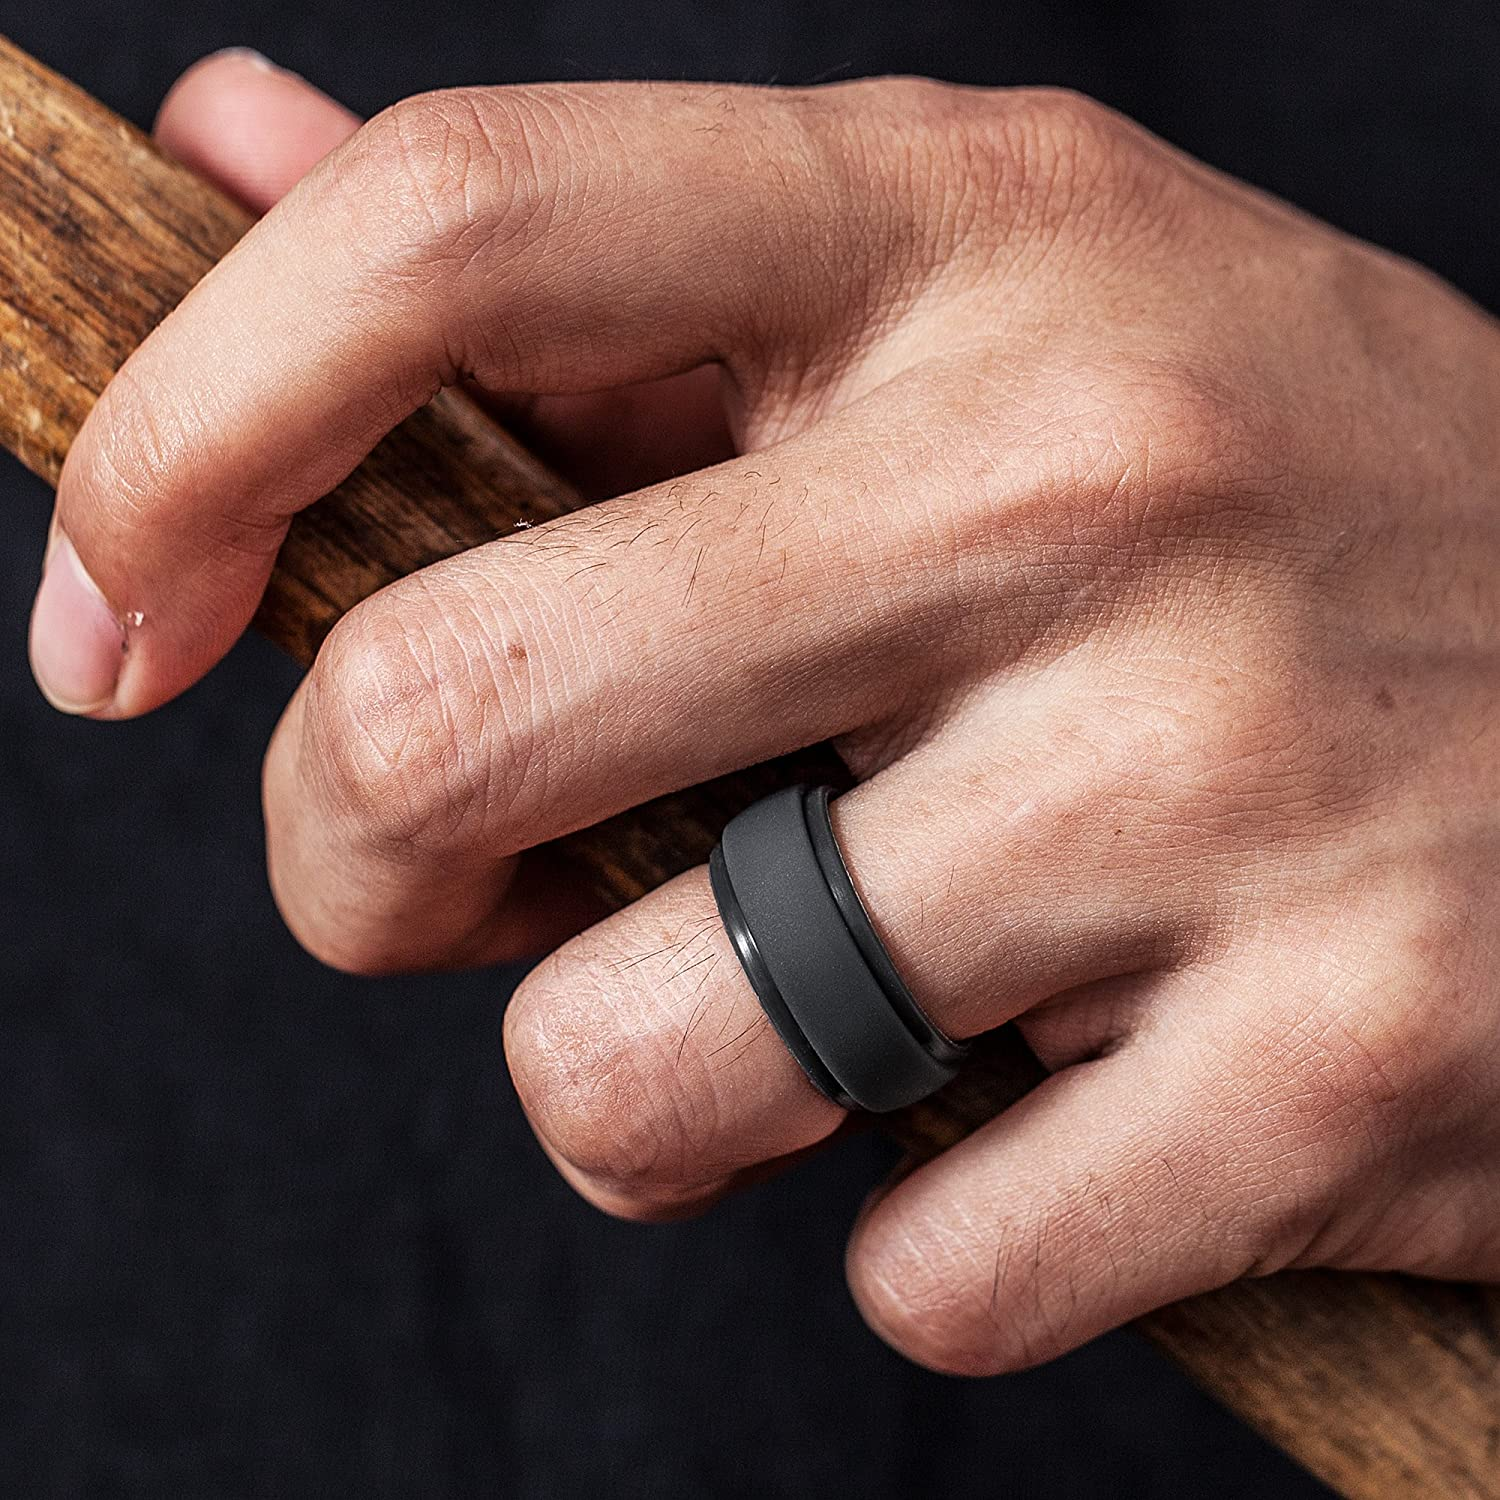 2.5mm Thick ThunderFit Silicone Rings for Men 4 Rings 1 Ring Step Edge Rubber Wedding Bands 10mm Wide 7 Rings